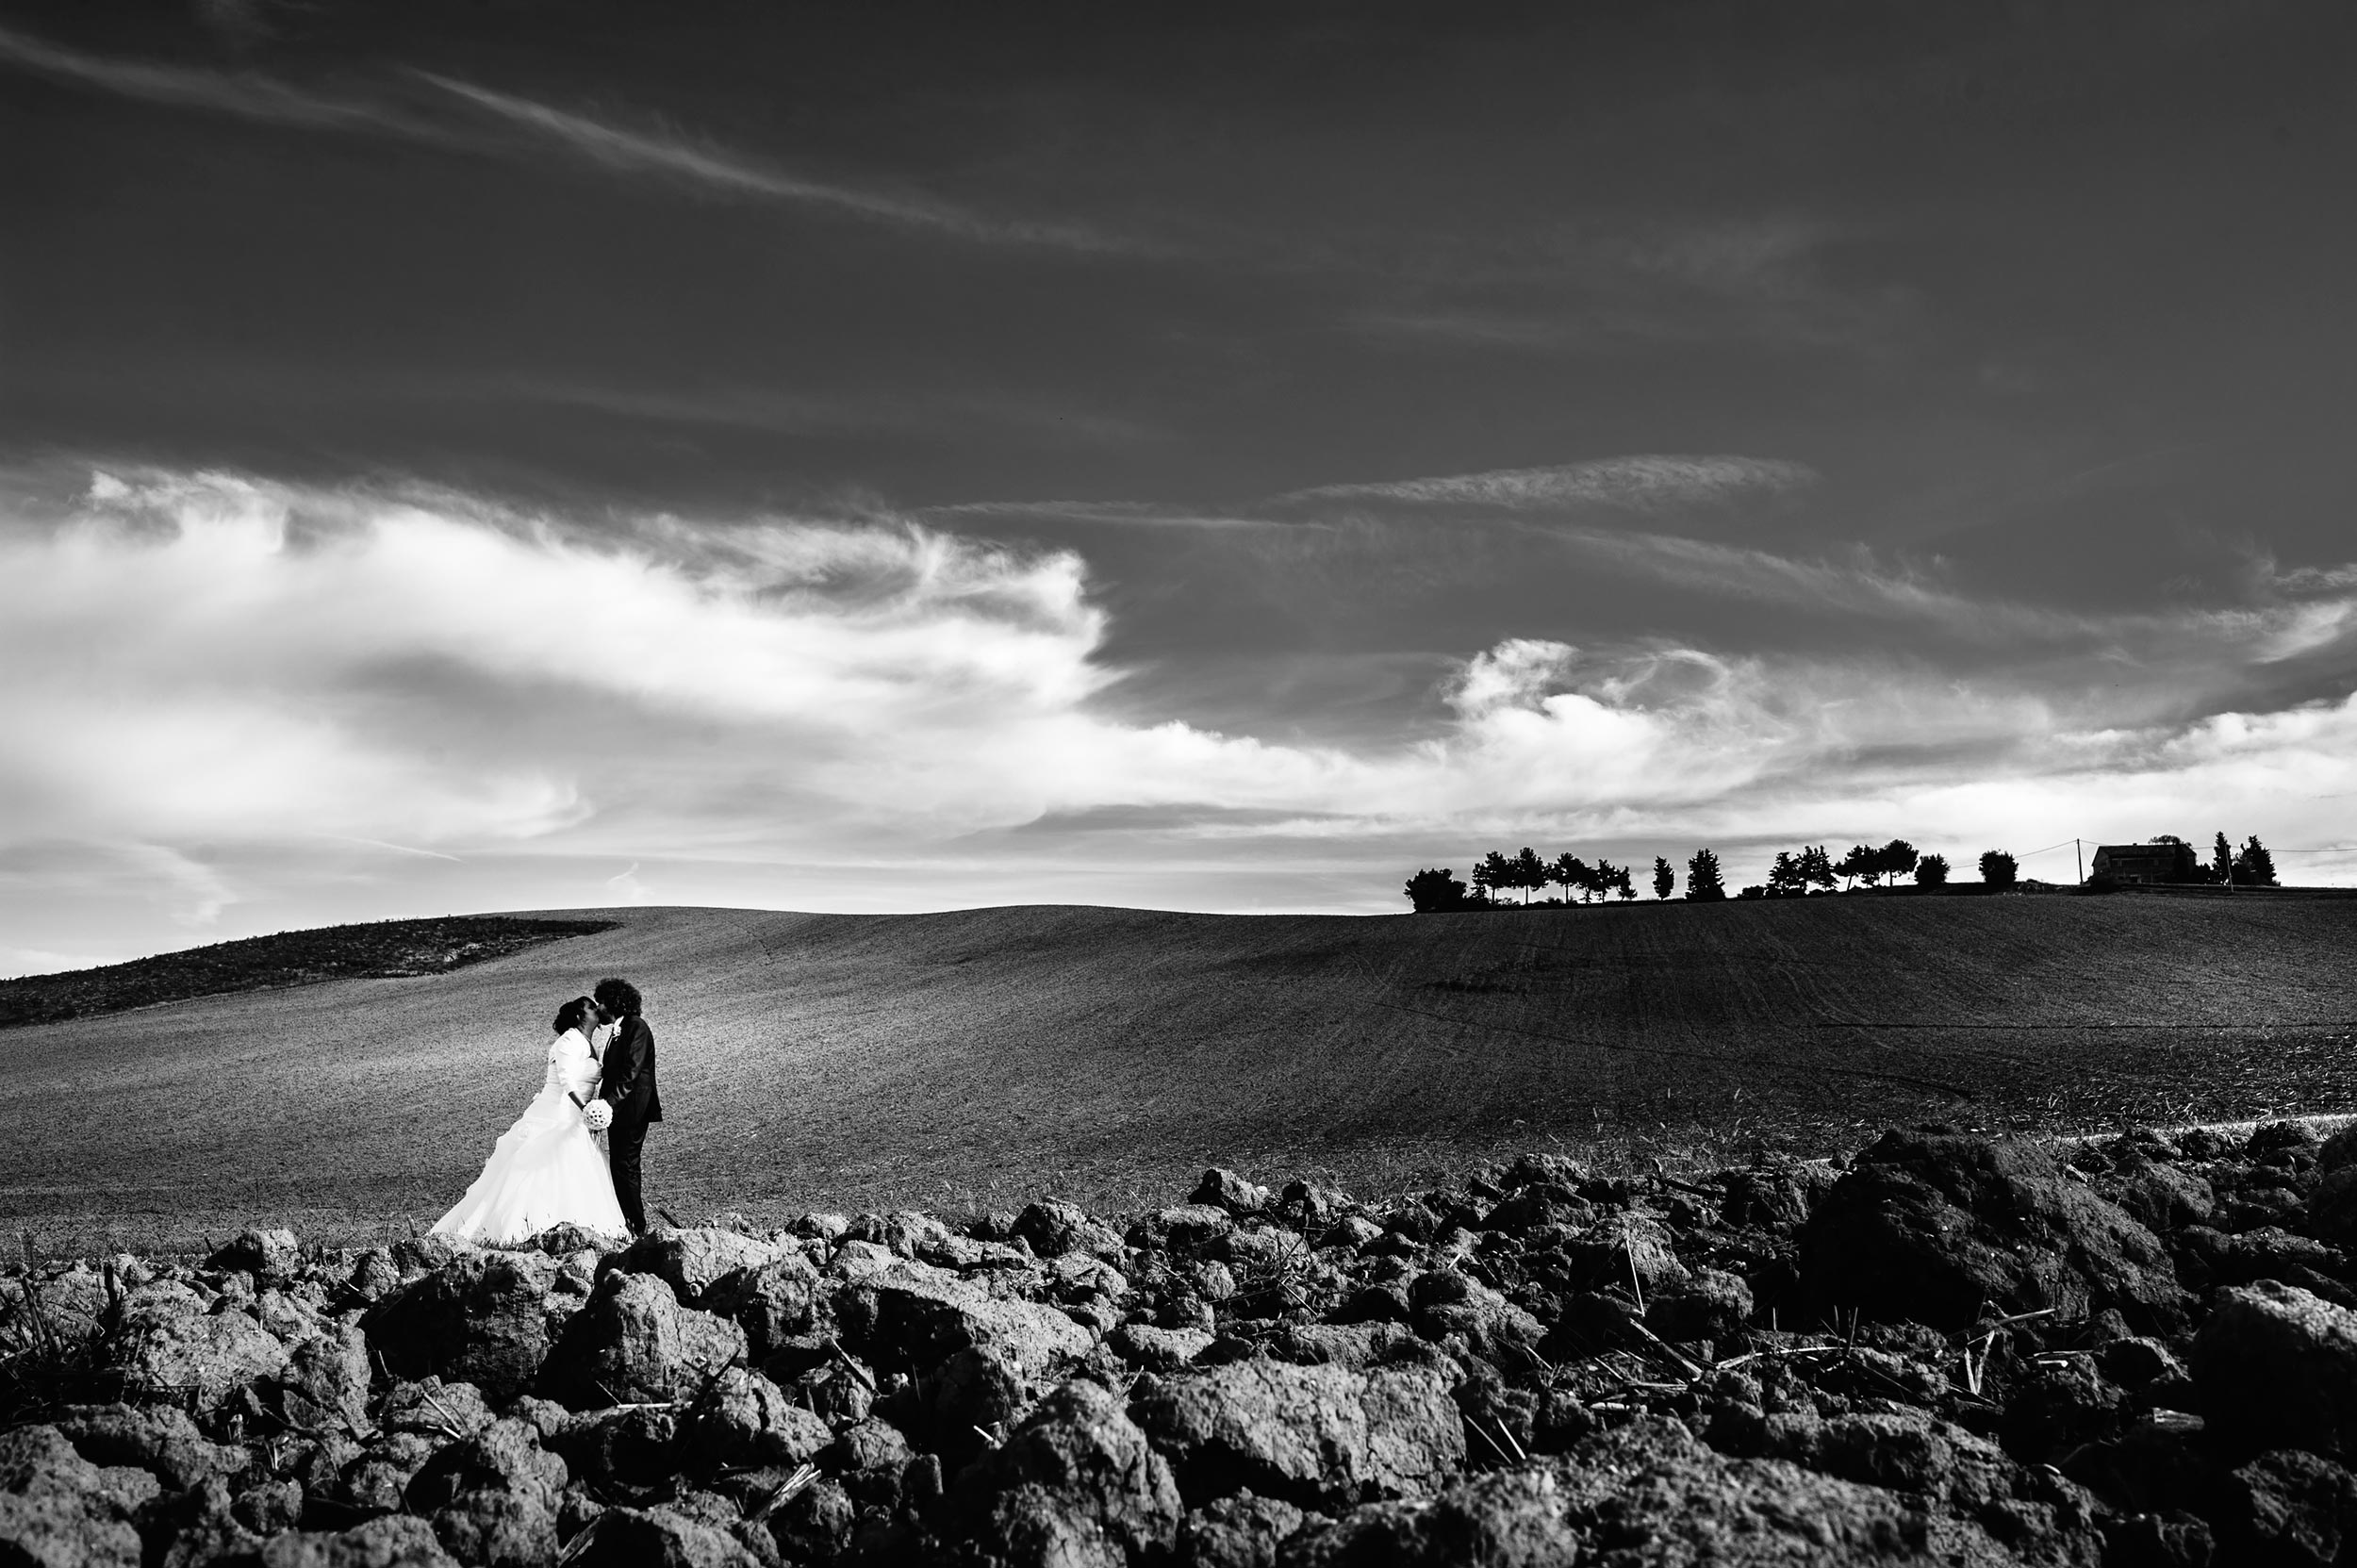 wedding-countryside-marche-tuscany-italy-black-and-white-wedding-photography.jpg